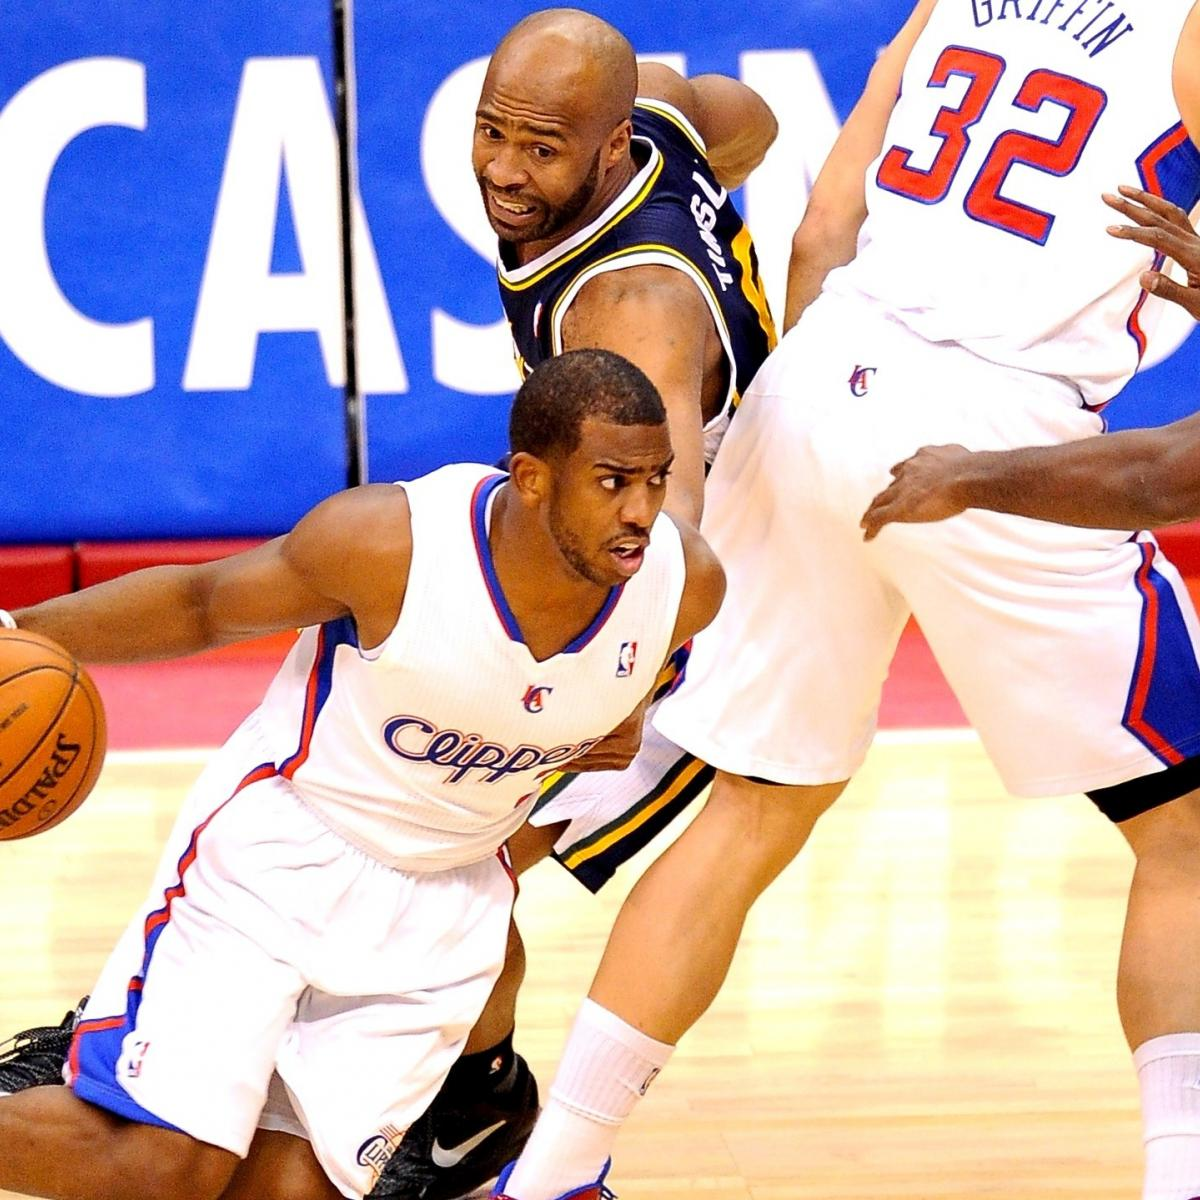 Nuggets Clippers Highlights: Utah Jazz Vs. L.A. Clippers: Live Score, Results And Game